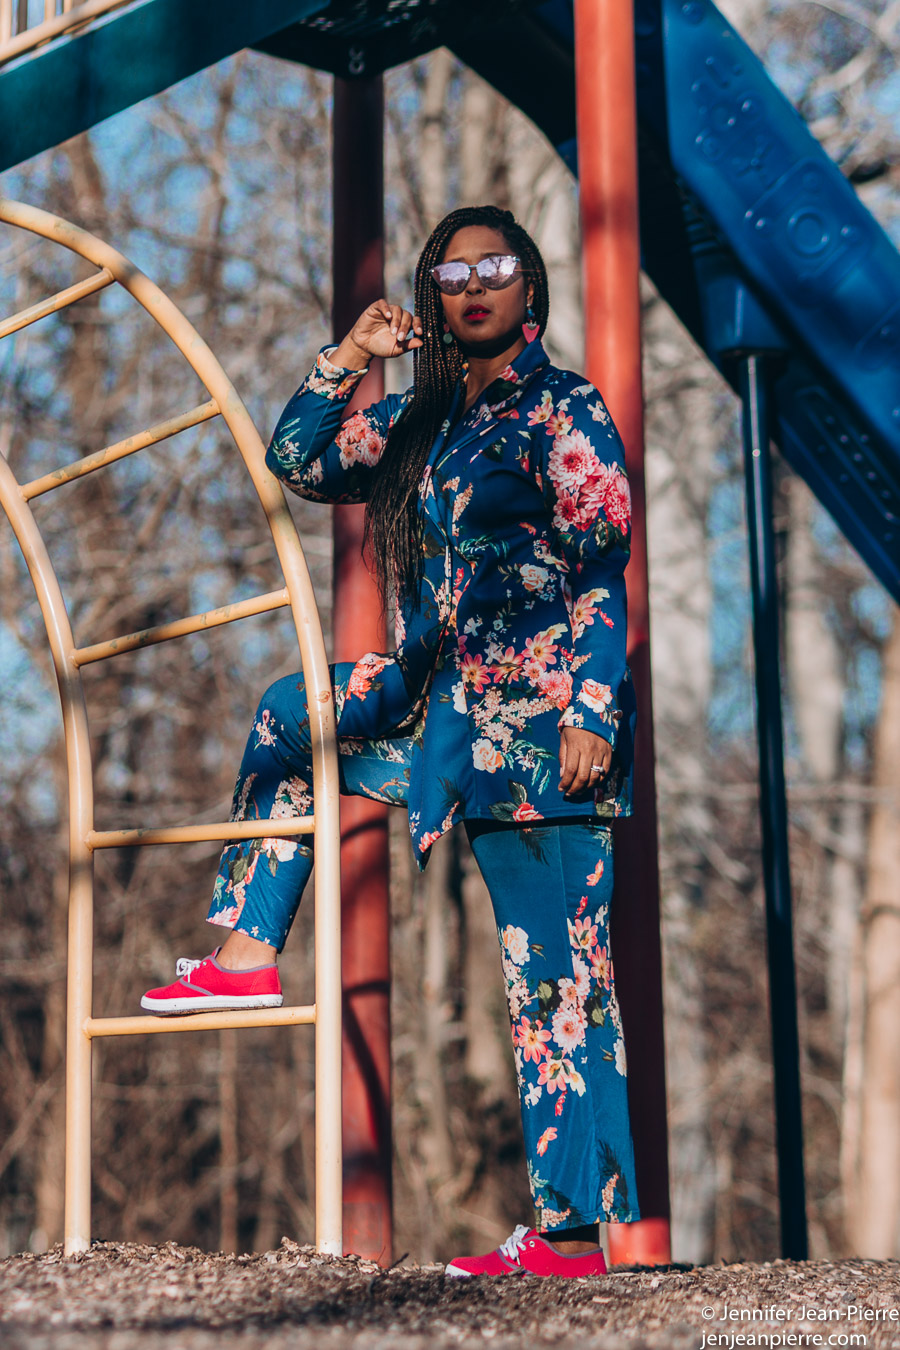 black girl wearing a blue floral suit with long braids at a playground